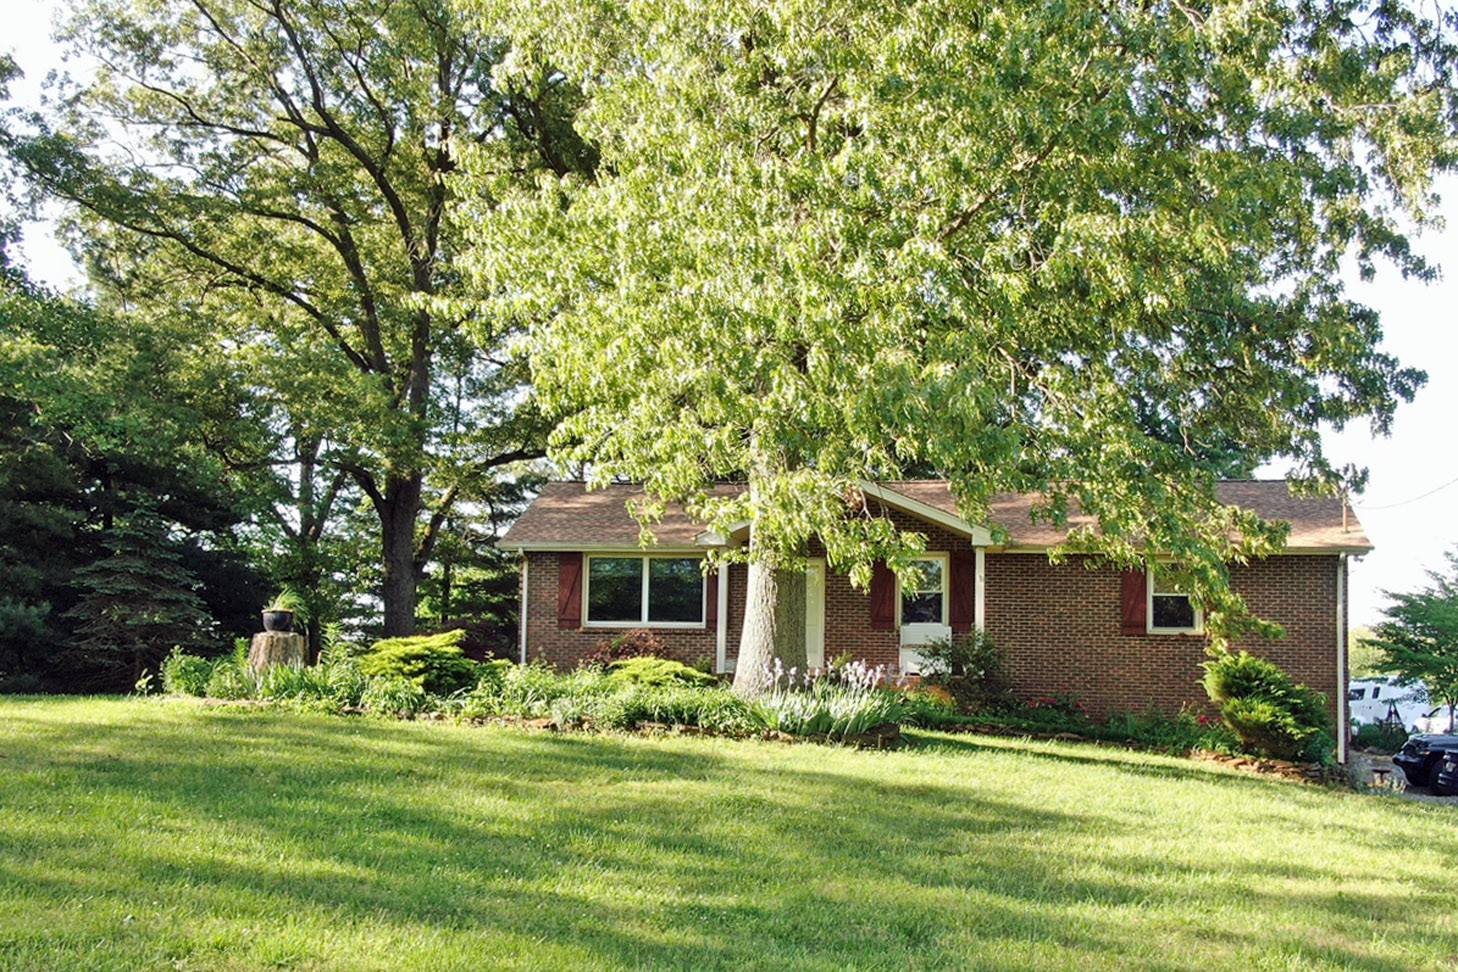 7798 Duers Mill Rd Property Photo - Orlinda, TN real estate listing